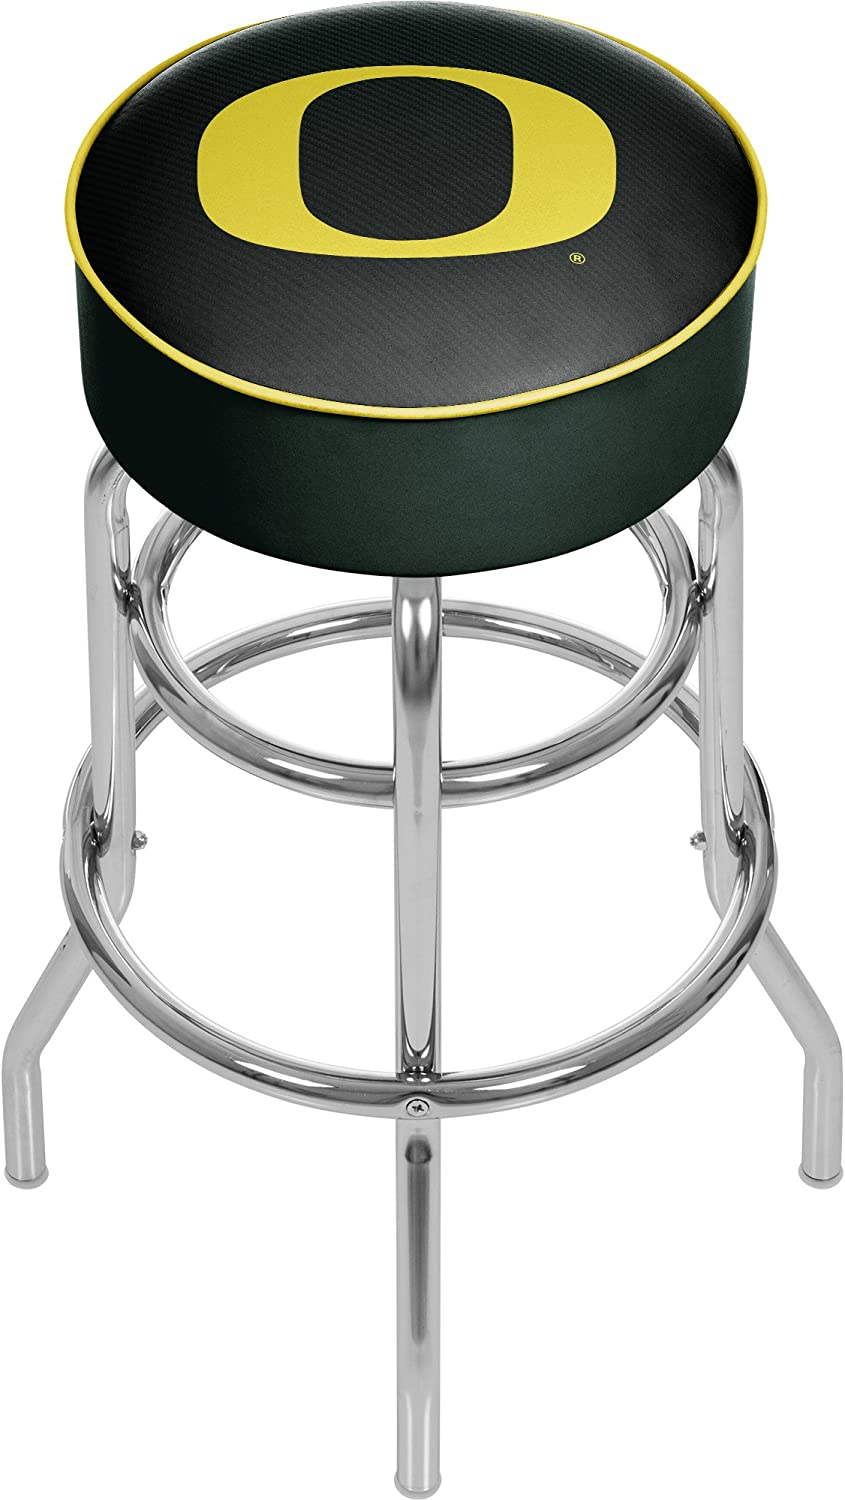 Trademark Cheap mail order sales Gameroom University of Oregon Bar Outlet sale feature Ca Chrome with Stool